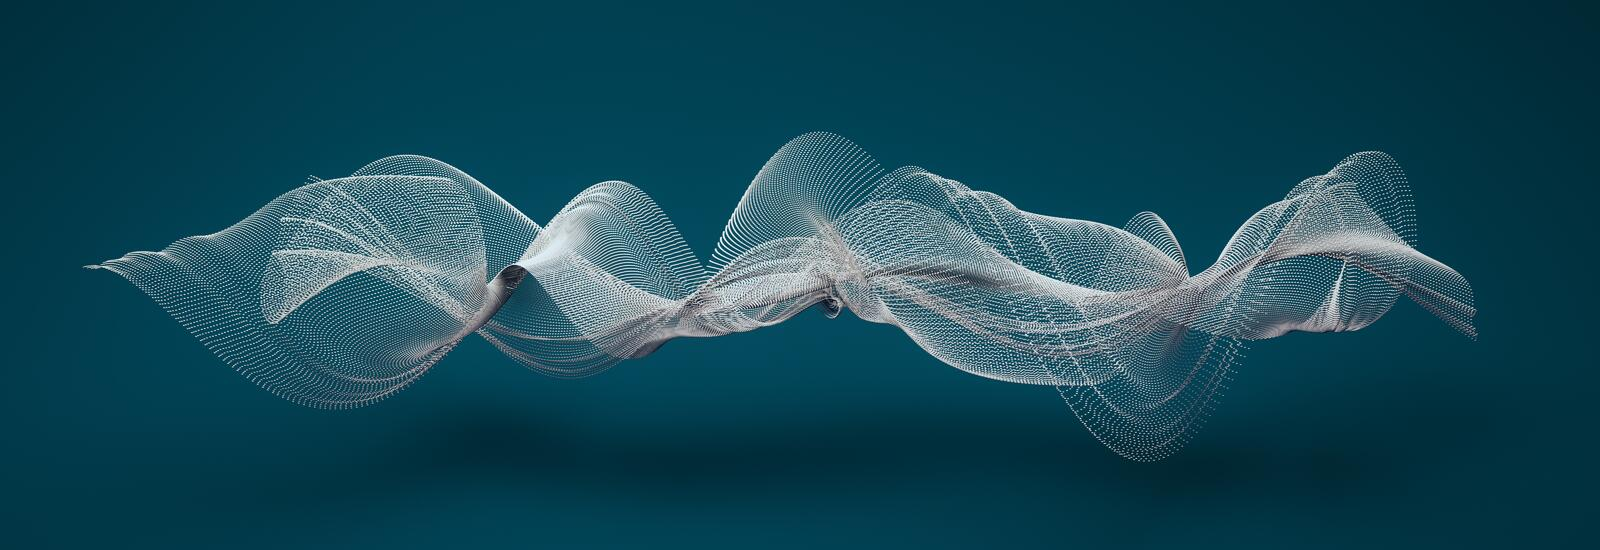 Abstract wave shapes. 3d illustration stock illustration